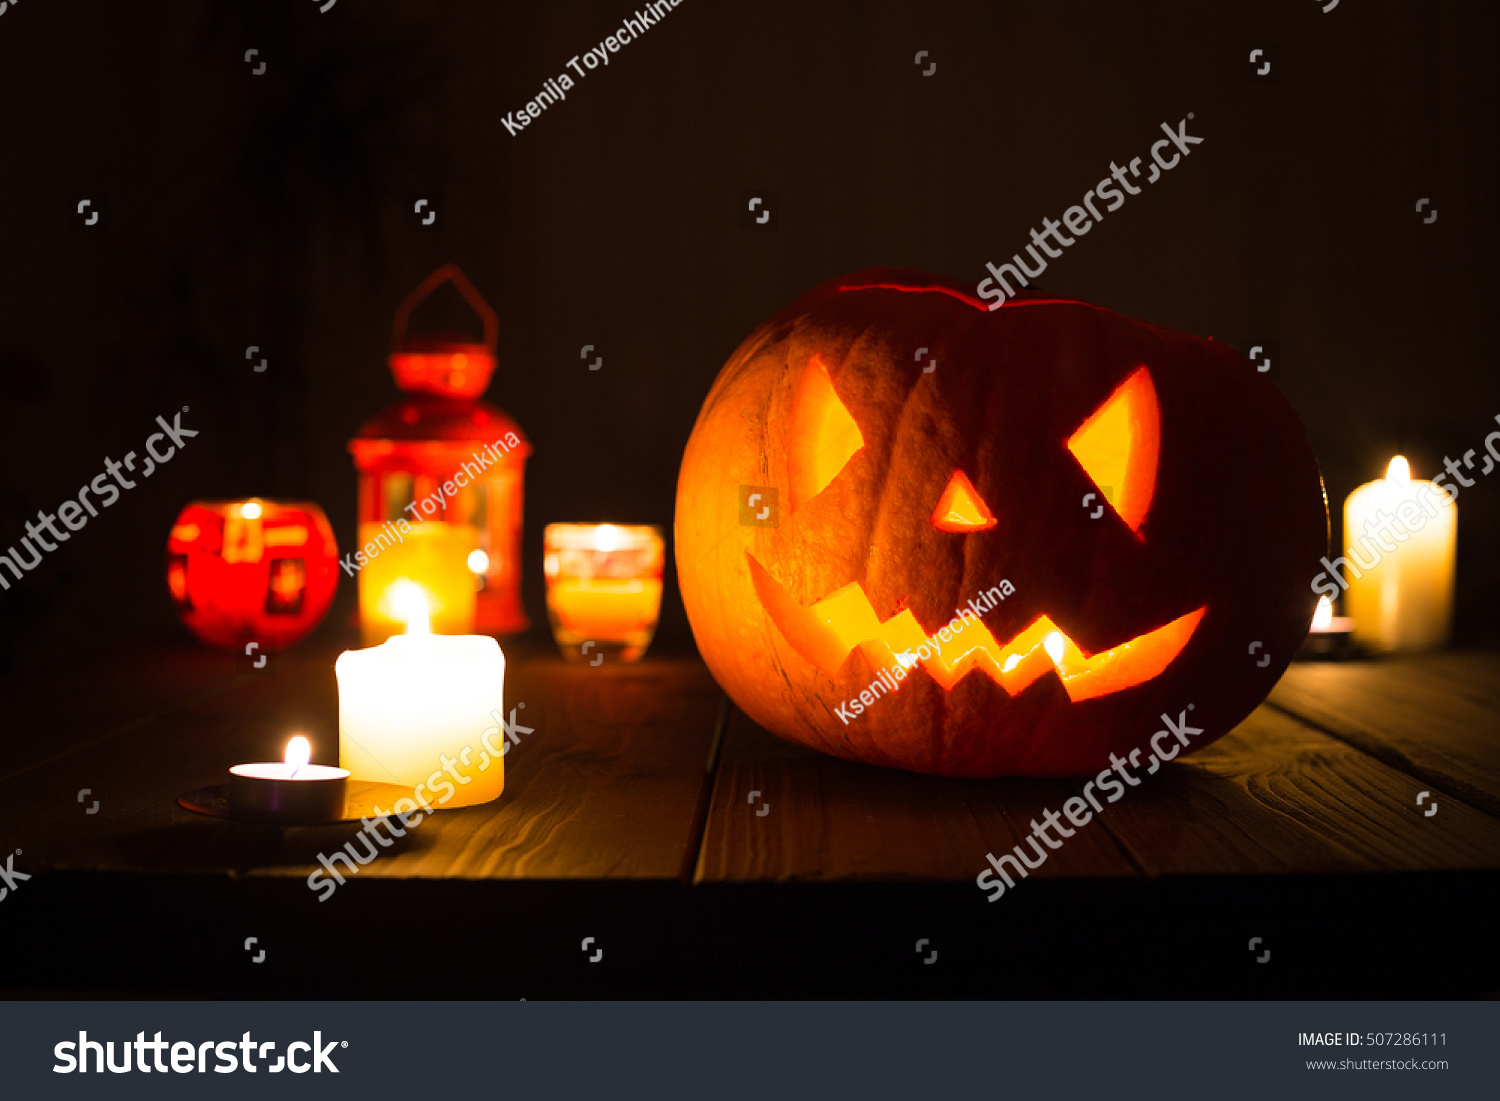 Scary Jack O Lantern Halloween Pumpkin Food And Drink Stock Image